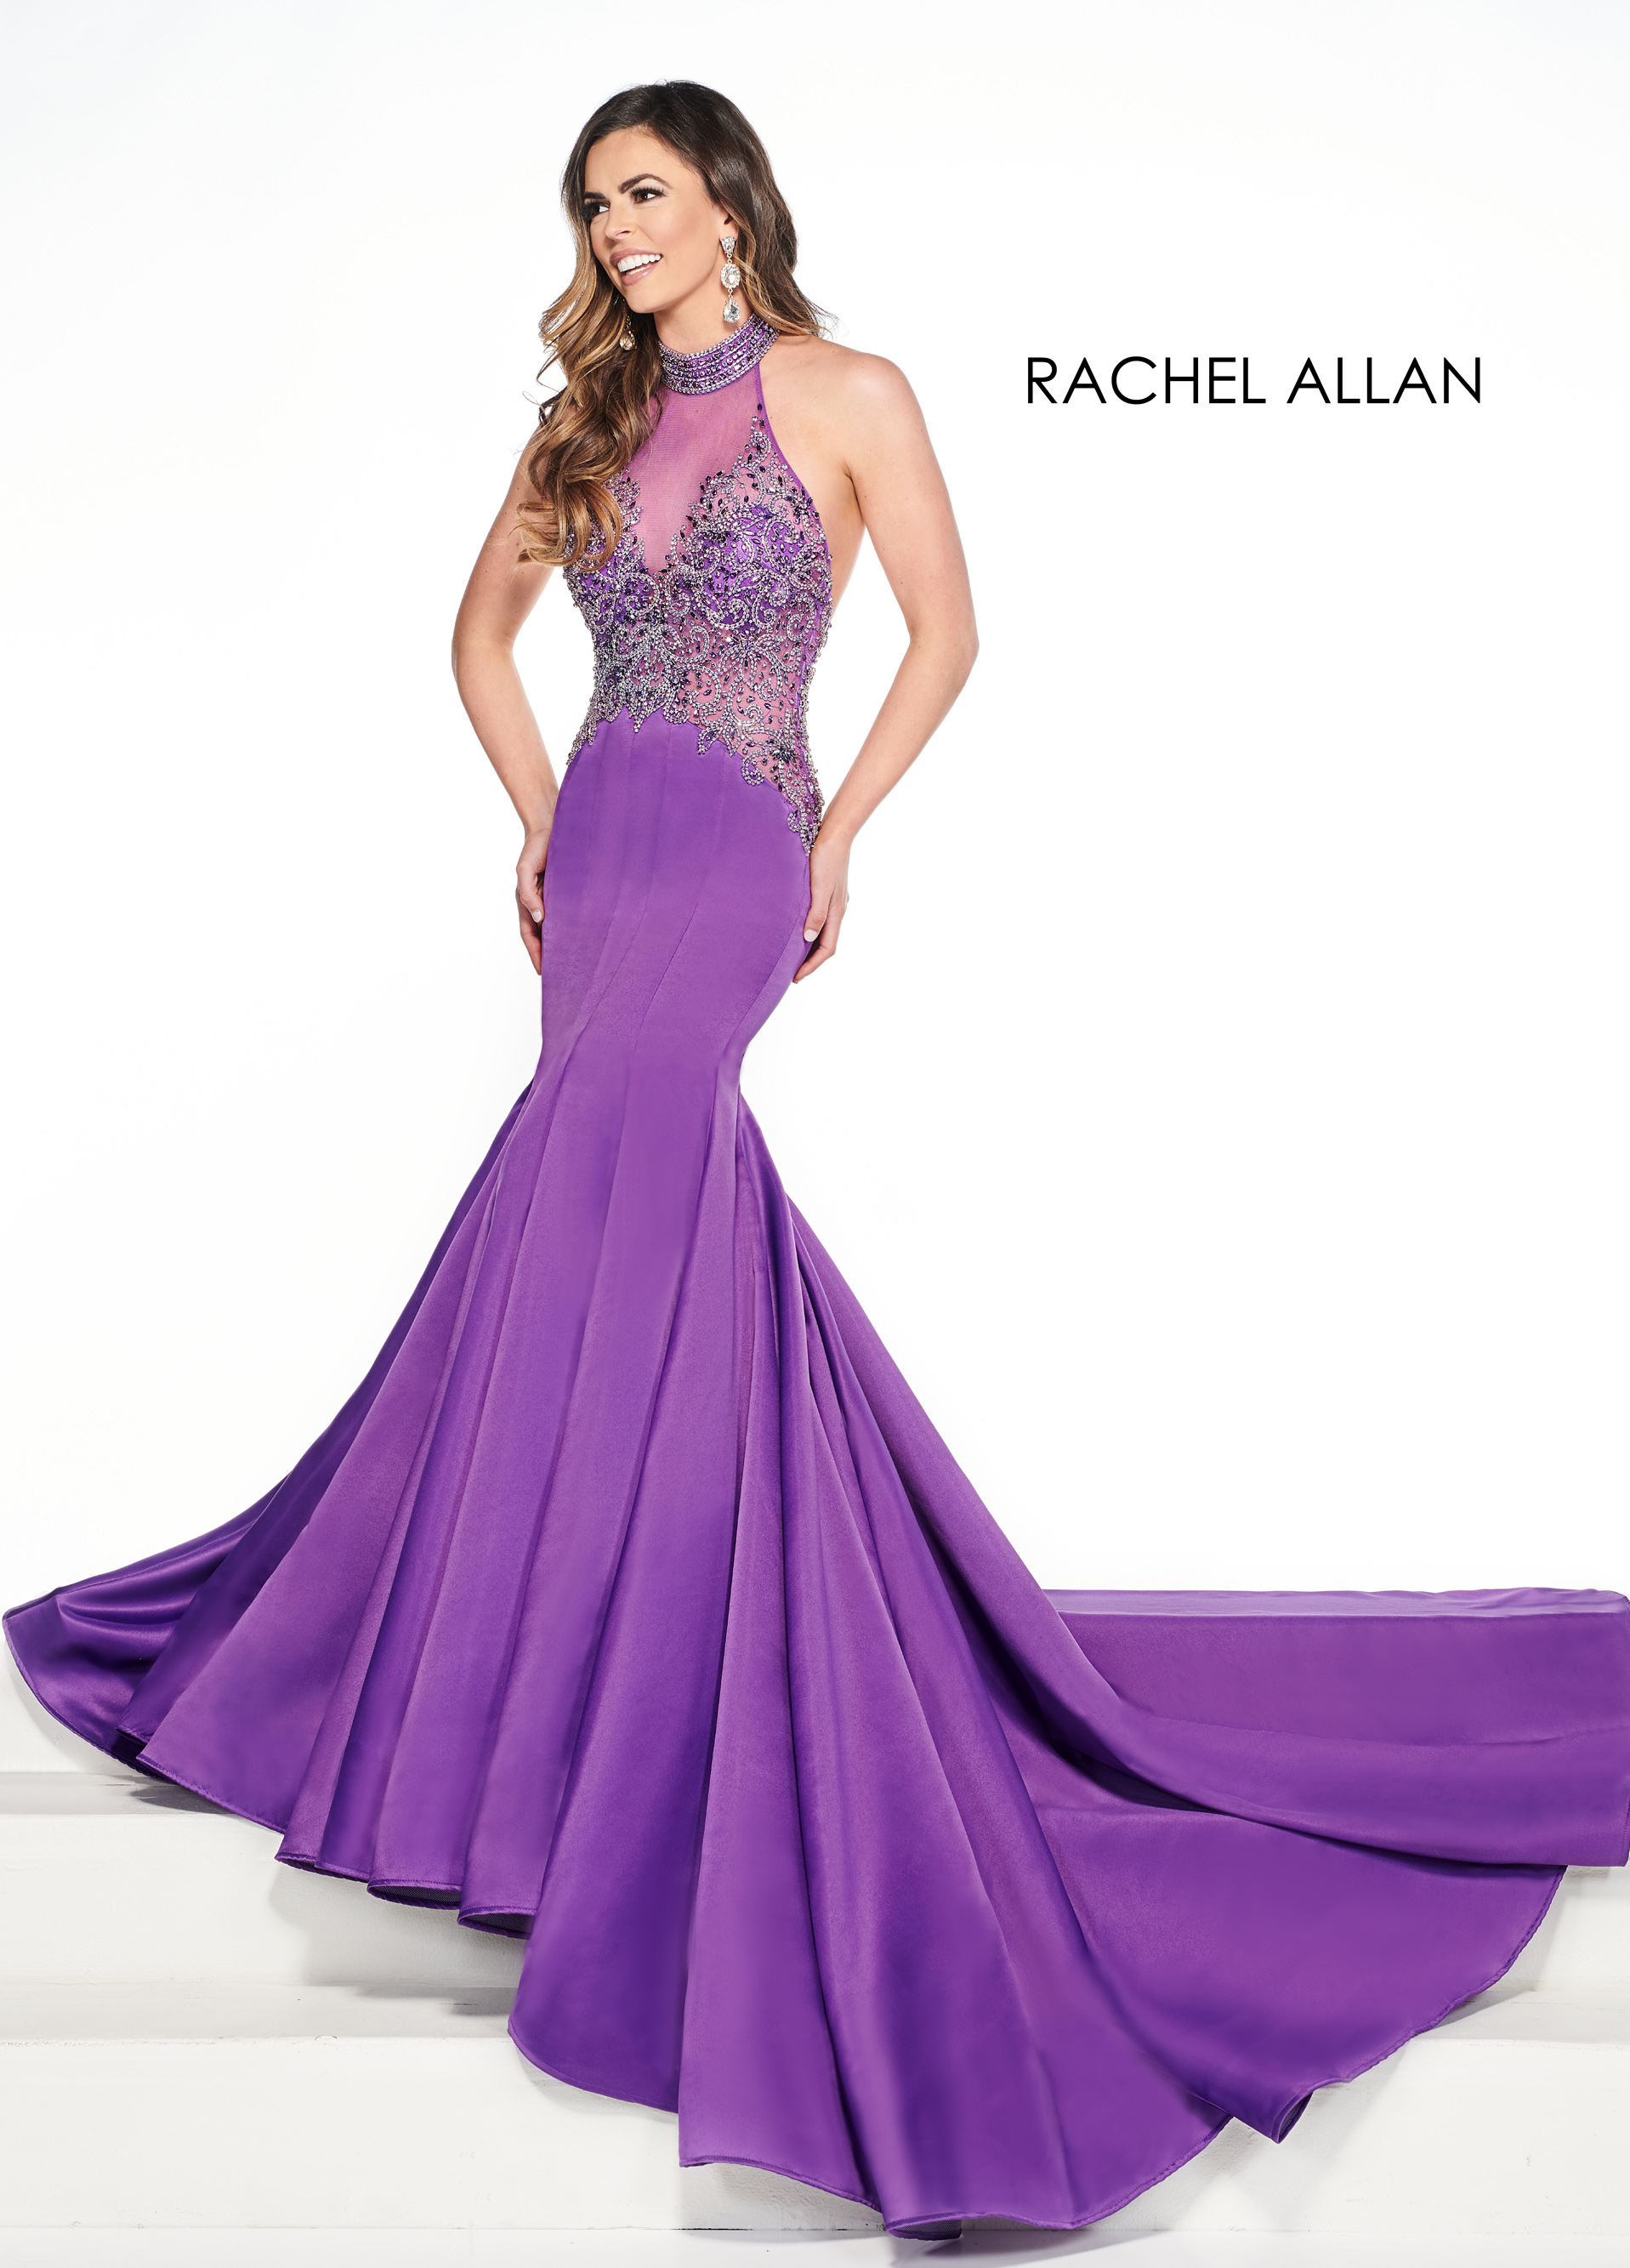 Halter Mermaid Pageant Dresses in Purple Color